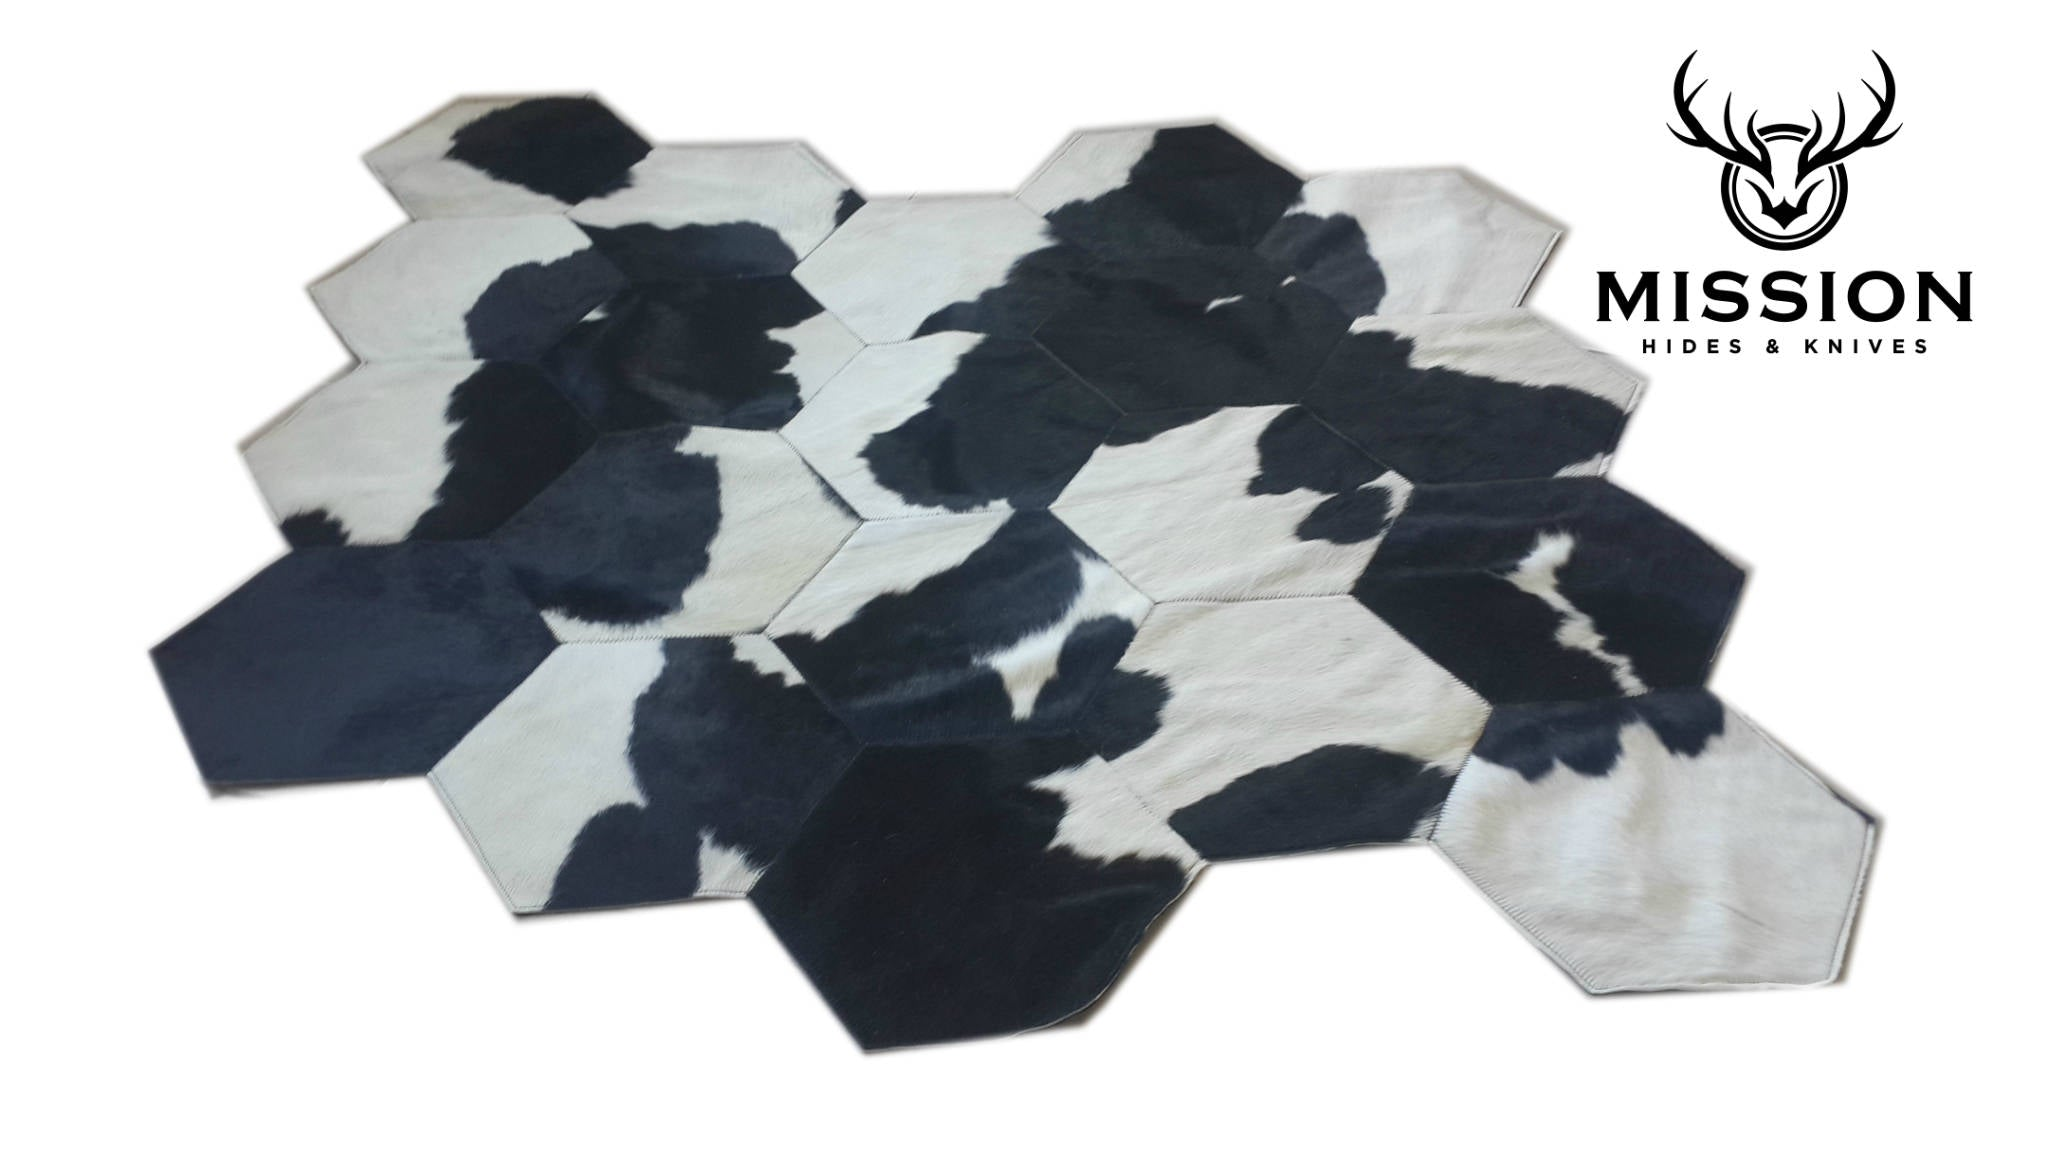 Cowhide Patchwork Rug. HEXAGON DESIGN Black Brown White ! Amazing!. 7.1 x 5.6 ft